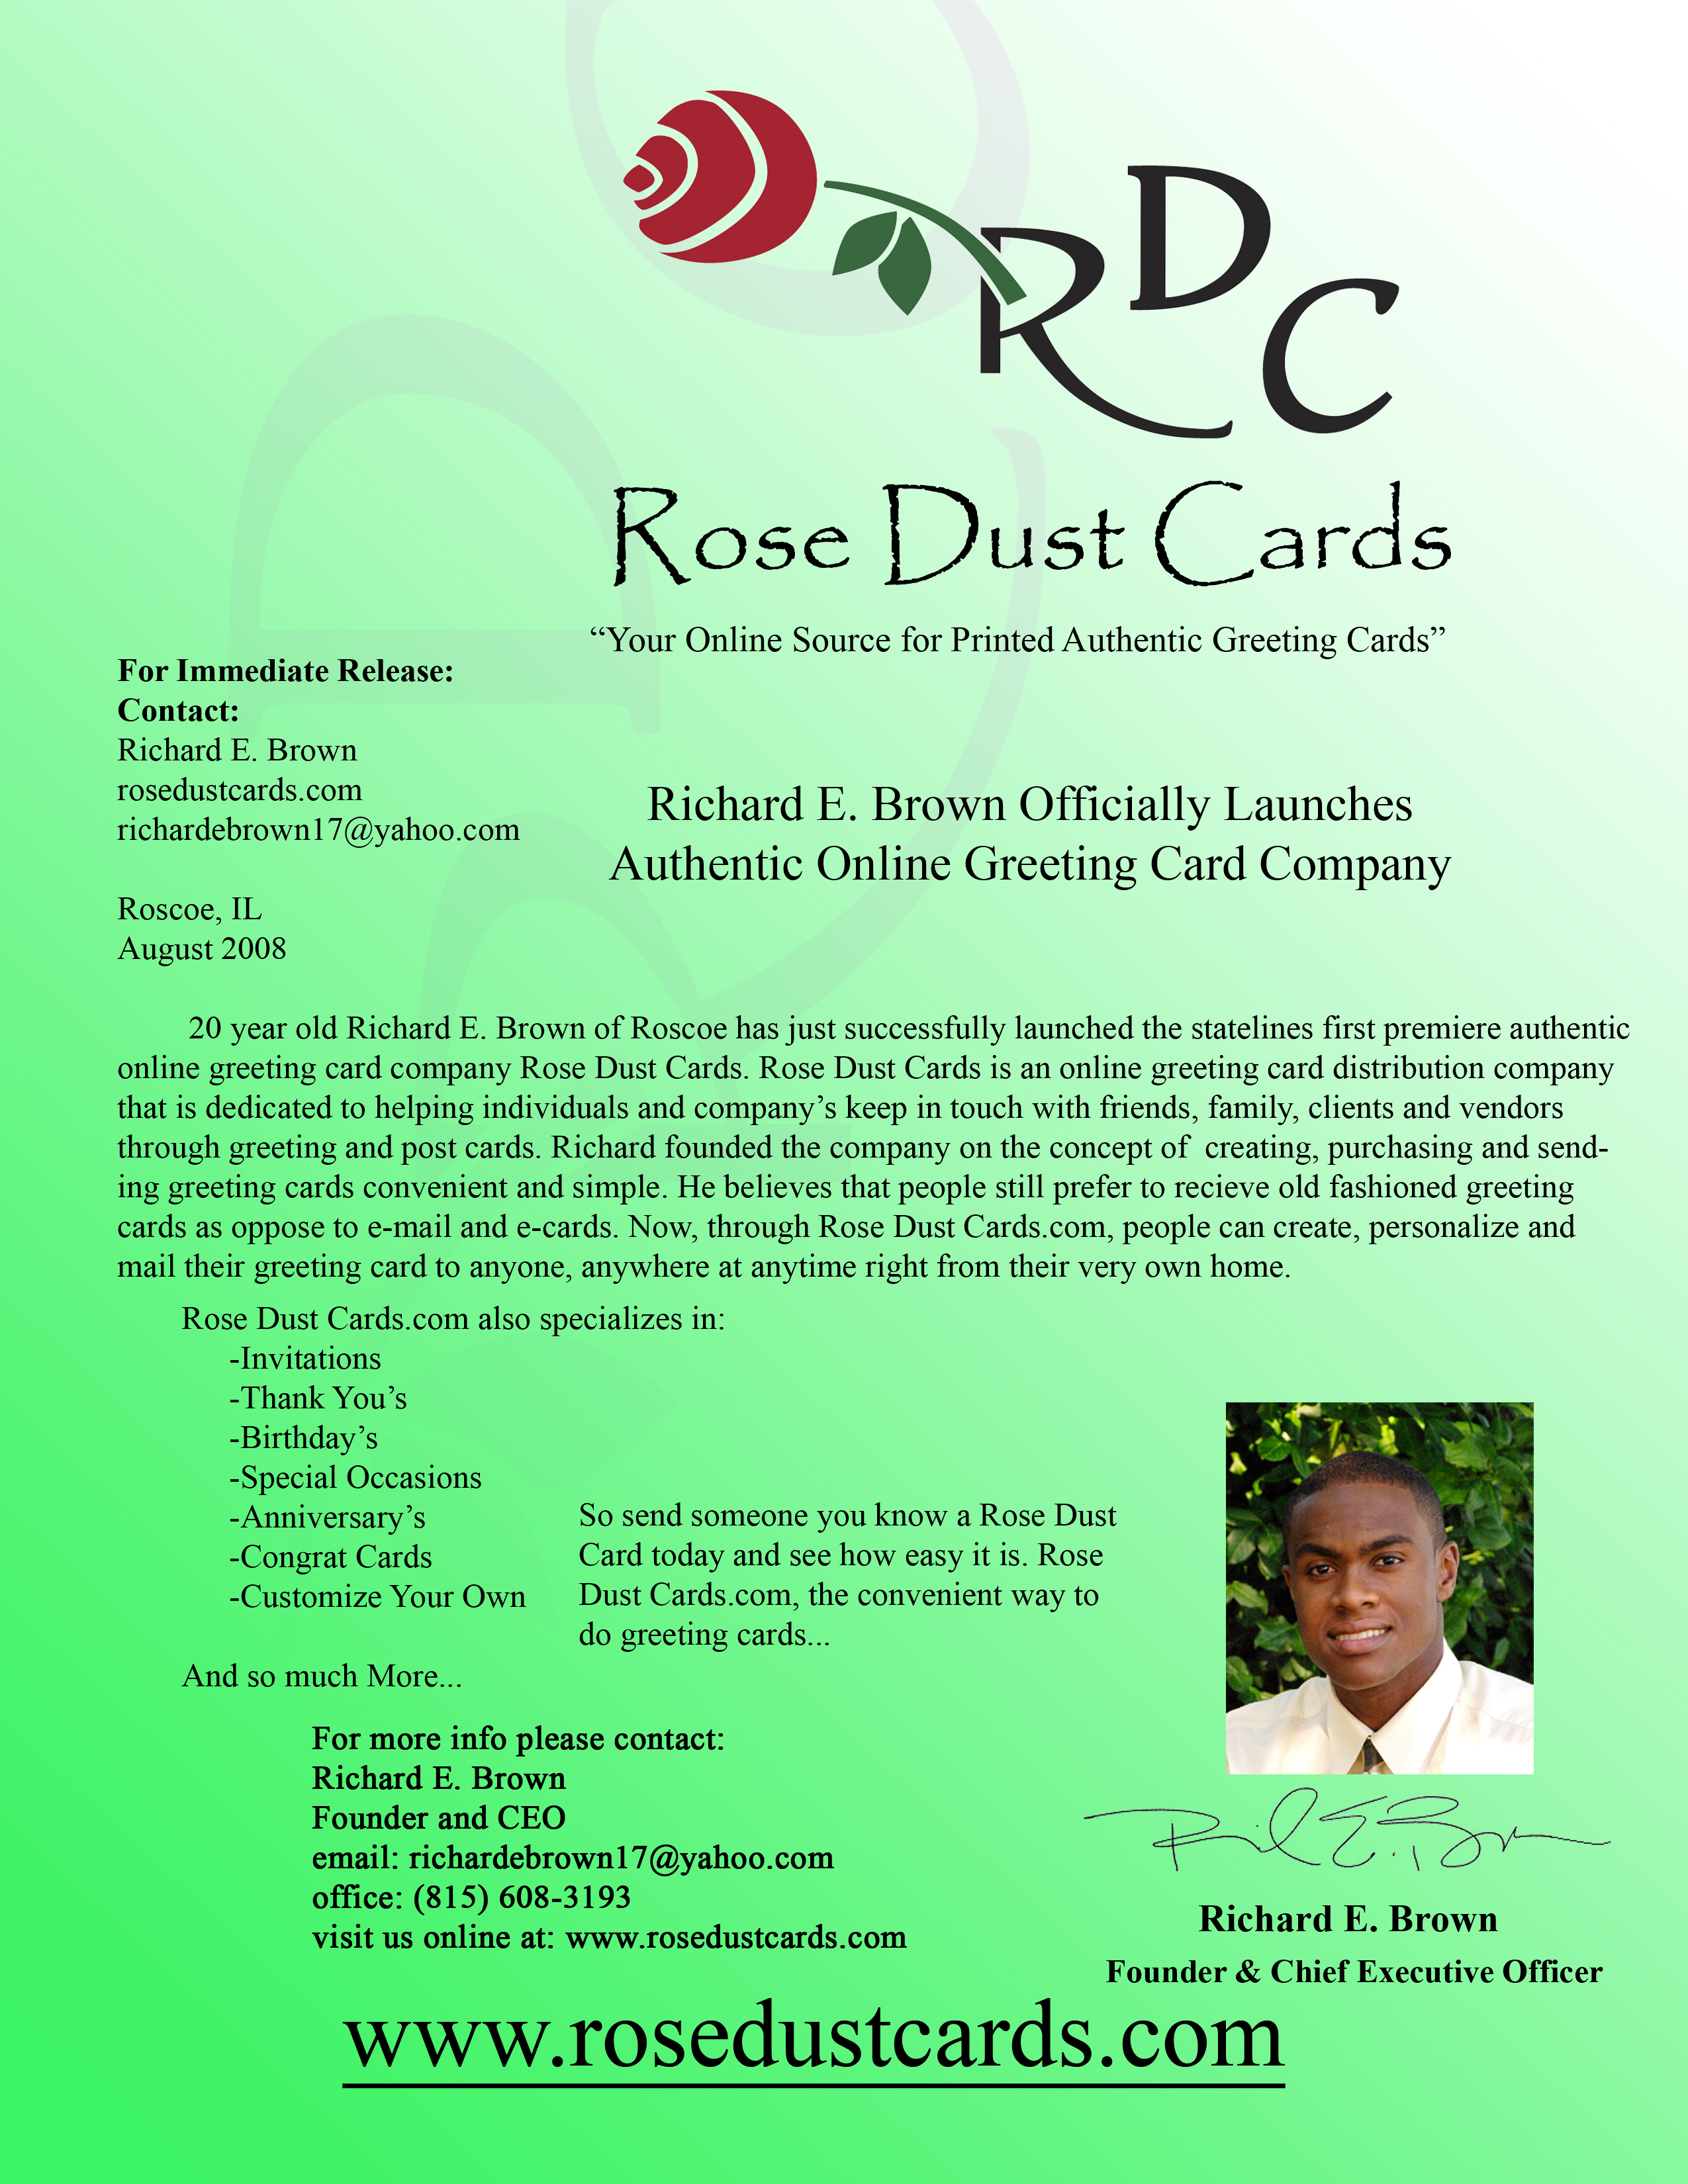 rose dust cards official press release - Greeting Cards Com